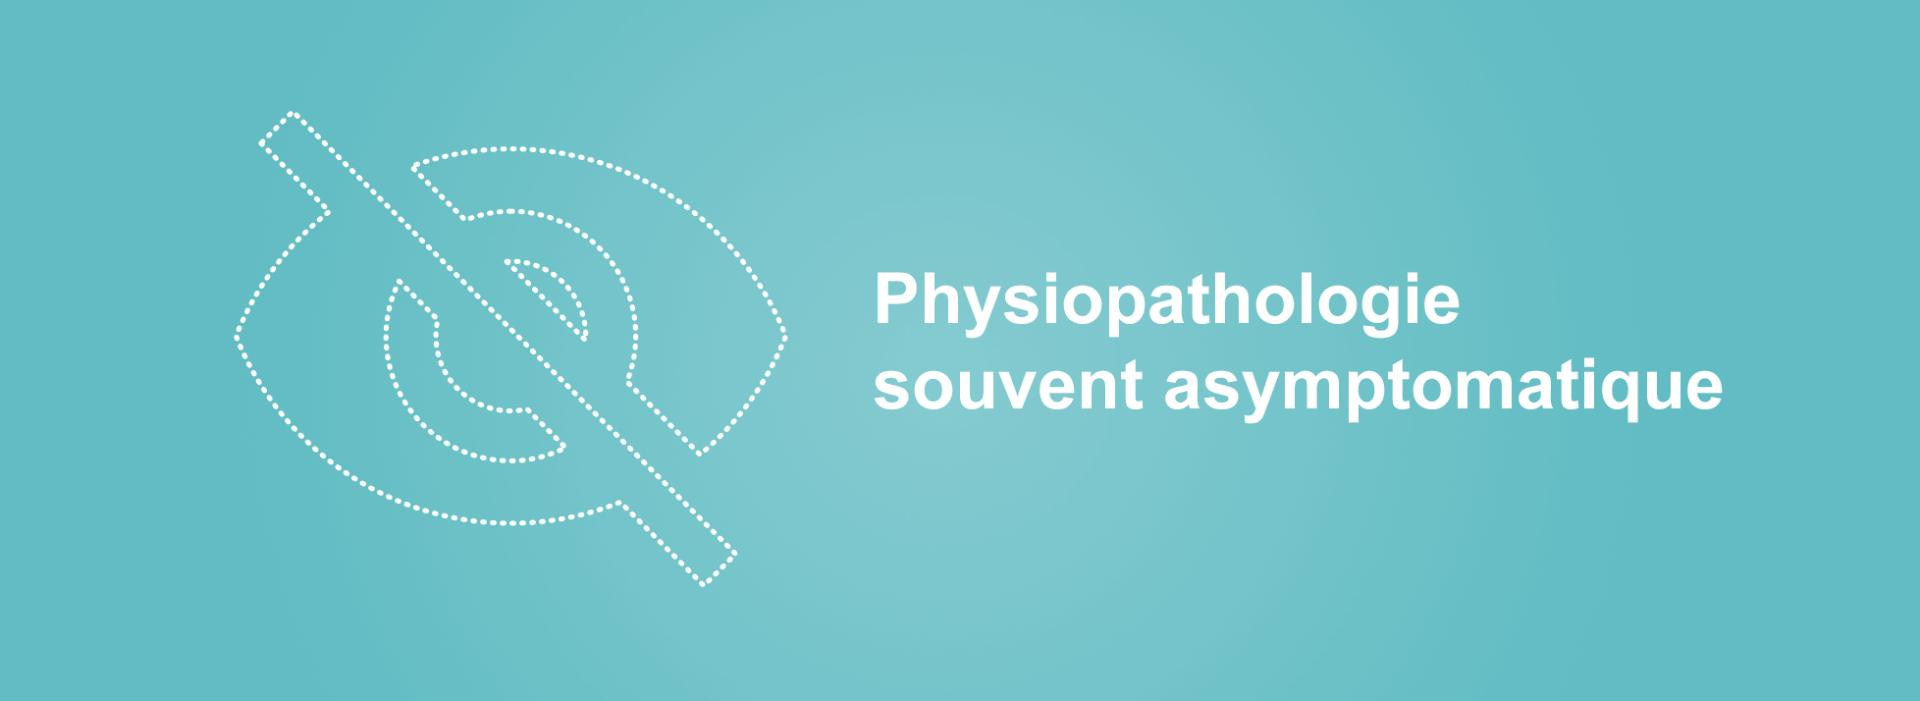 Physiopathologie asymptomatique,